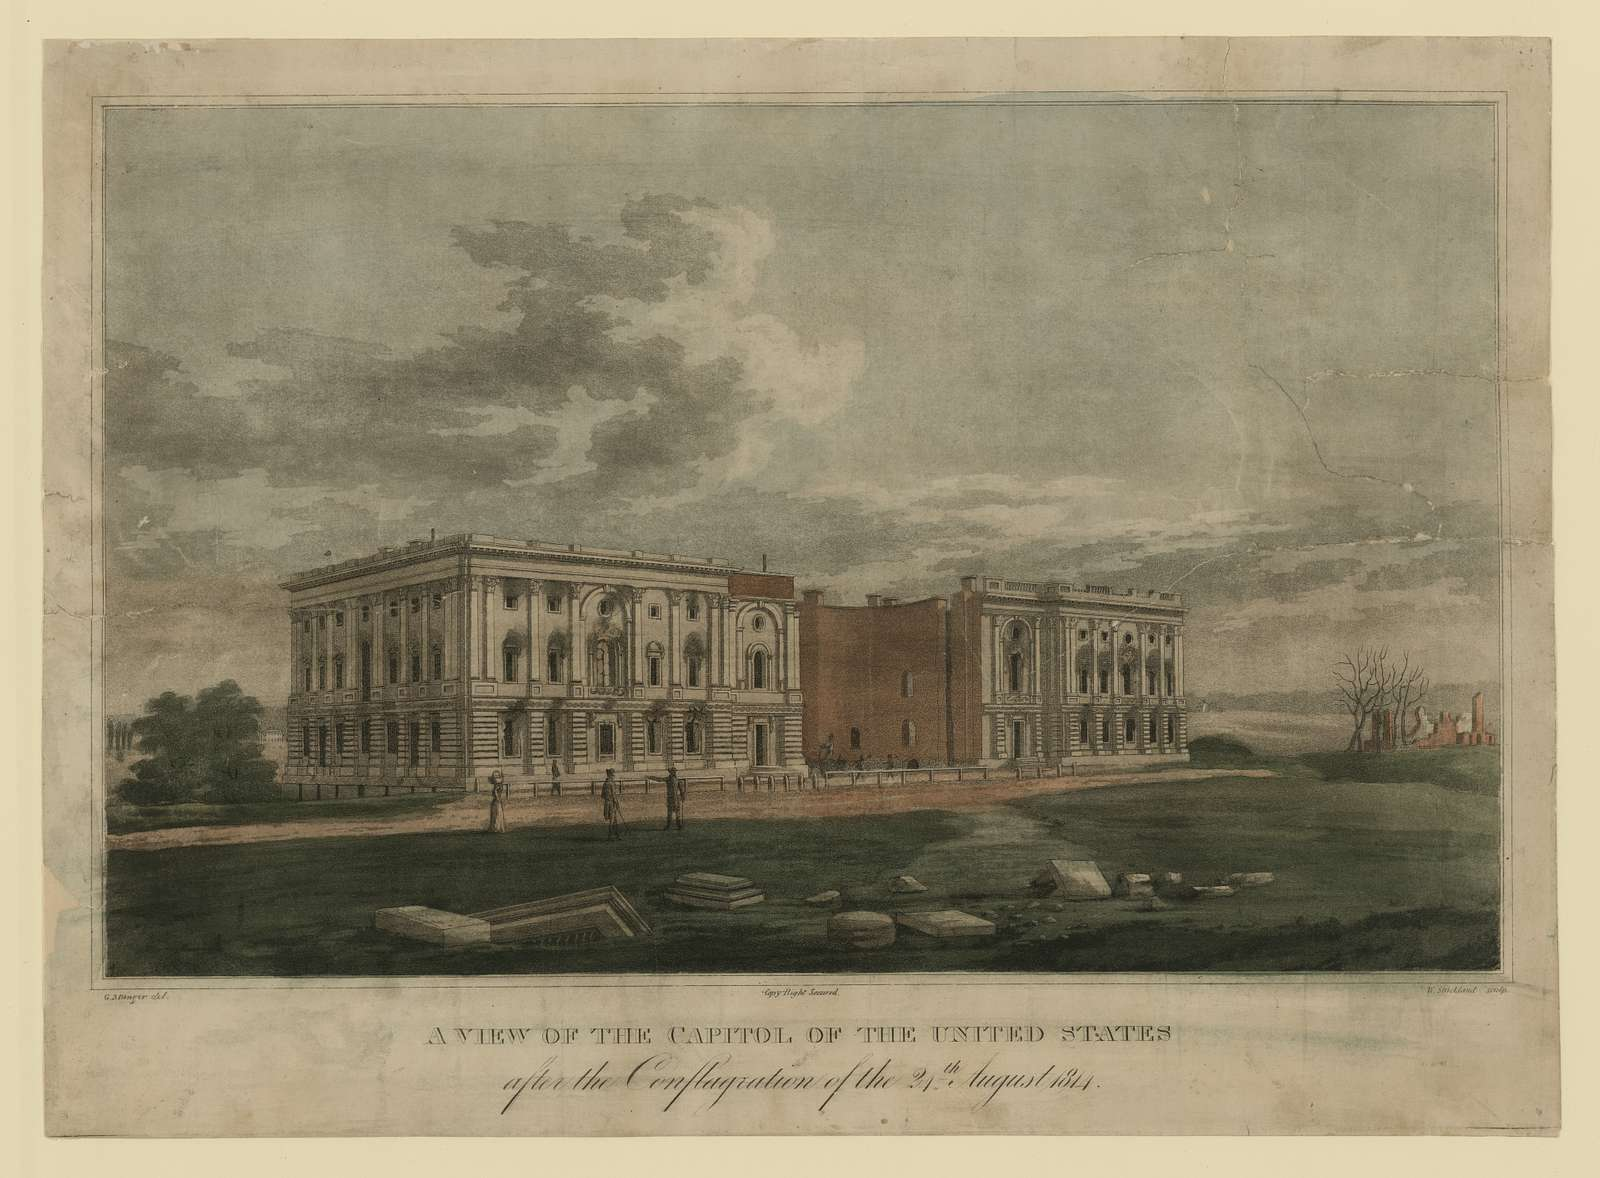 A view of the Capitol after the conflagration of the 24th August 1814 / G. Munger del. ; W. Strickland sculp.